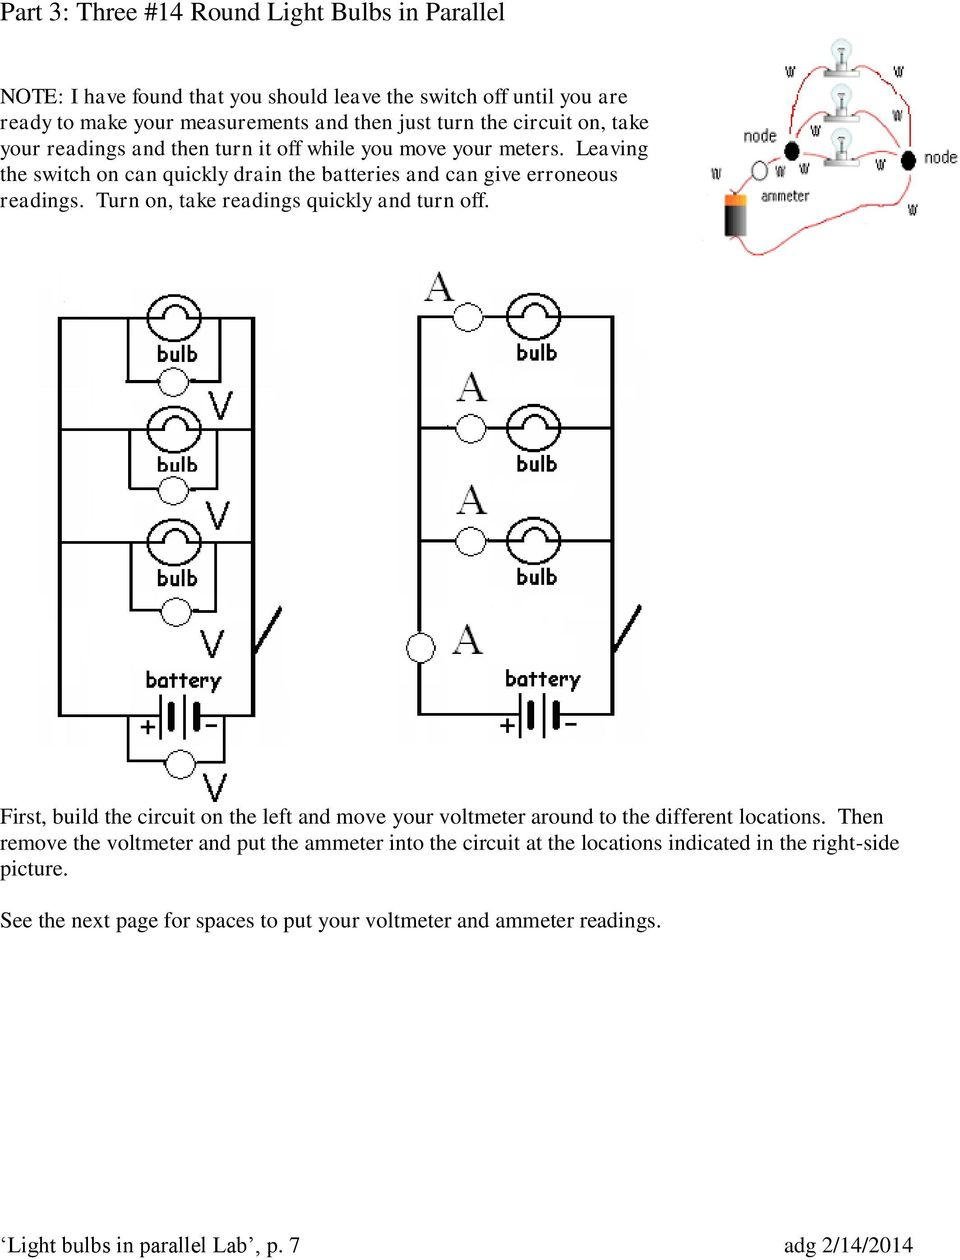 Light Bulbs In Parallel Circuits Pdf Bulb Wiring Diagram Turn On Take Readings Quickly And Off First Build The Circuit